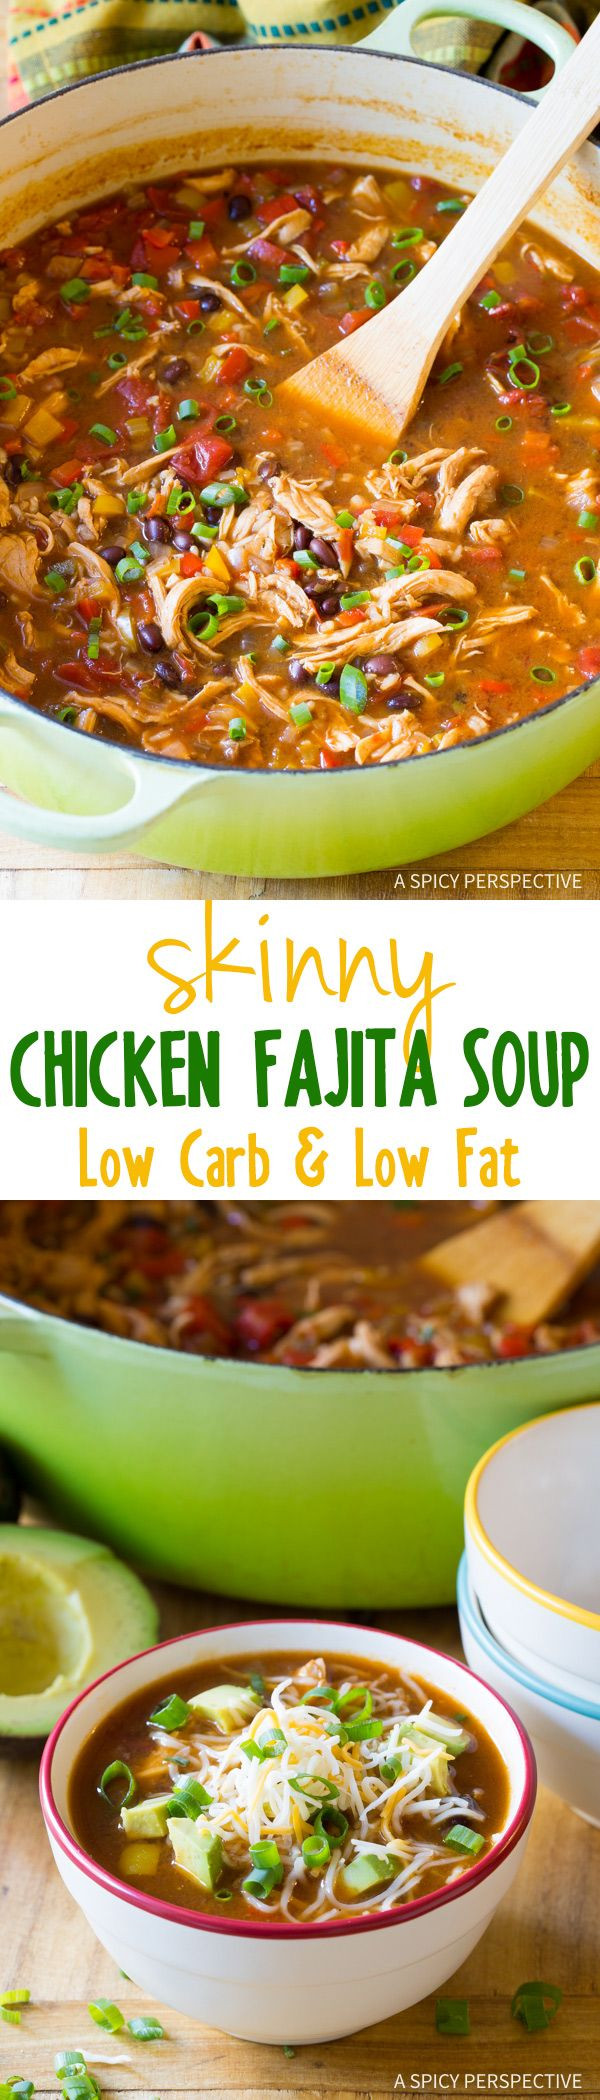 Low Carb Low Fat Recipes  25 best ideas about Low carb lunch on Pinterest